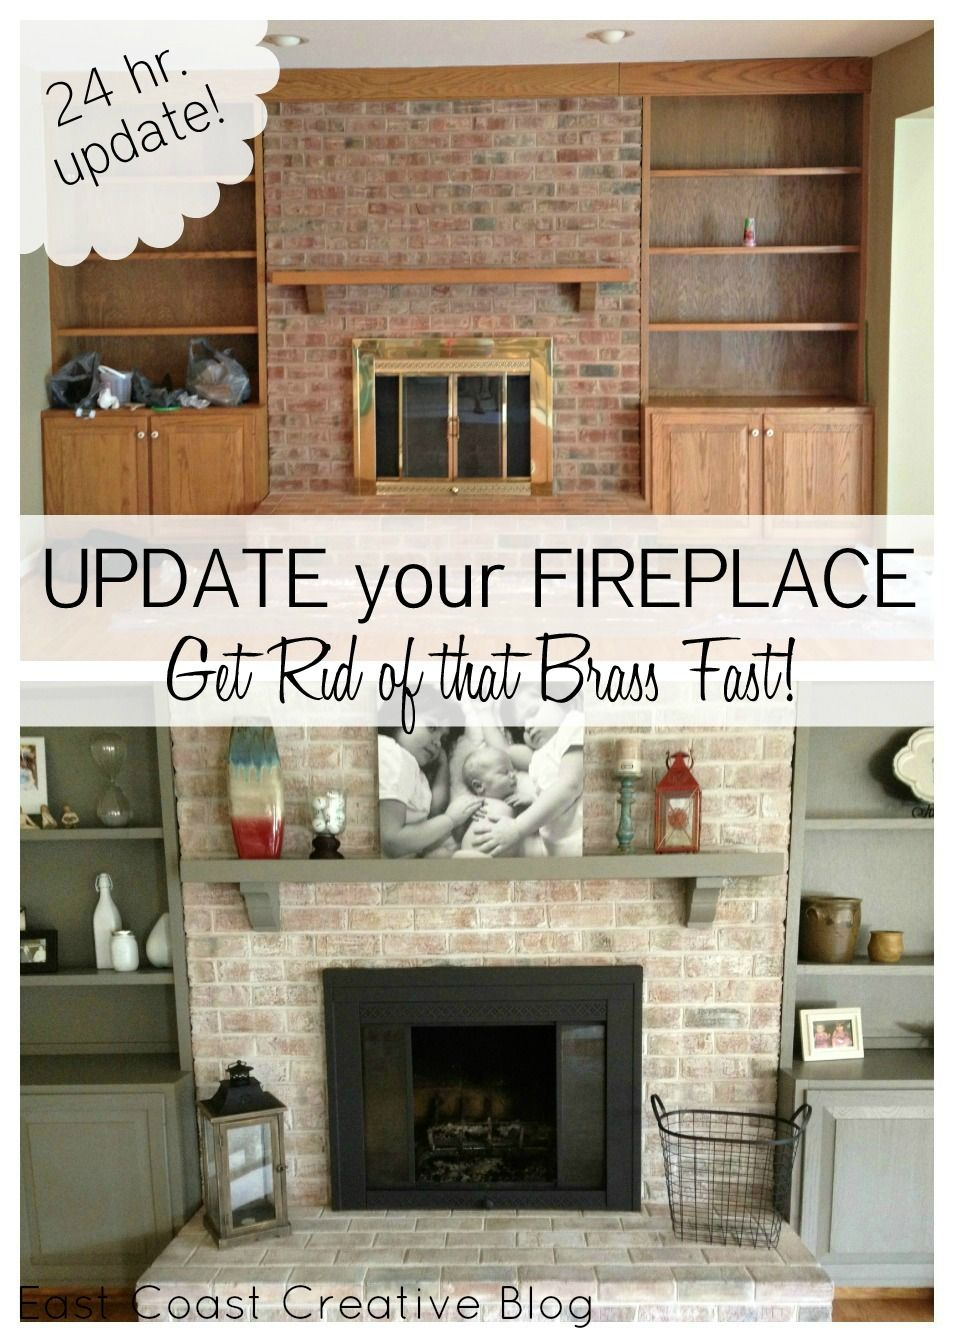 Swell How To Paint A Brick Fireplace Crafty Fireplace Remodel Home Interior And Landscaping Sapresignezvosmurscom